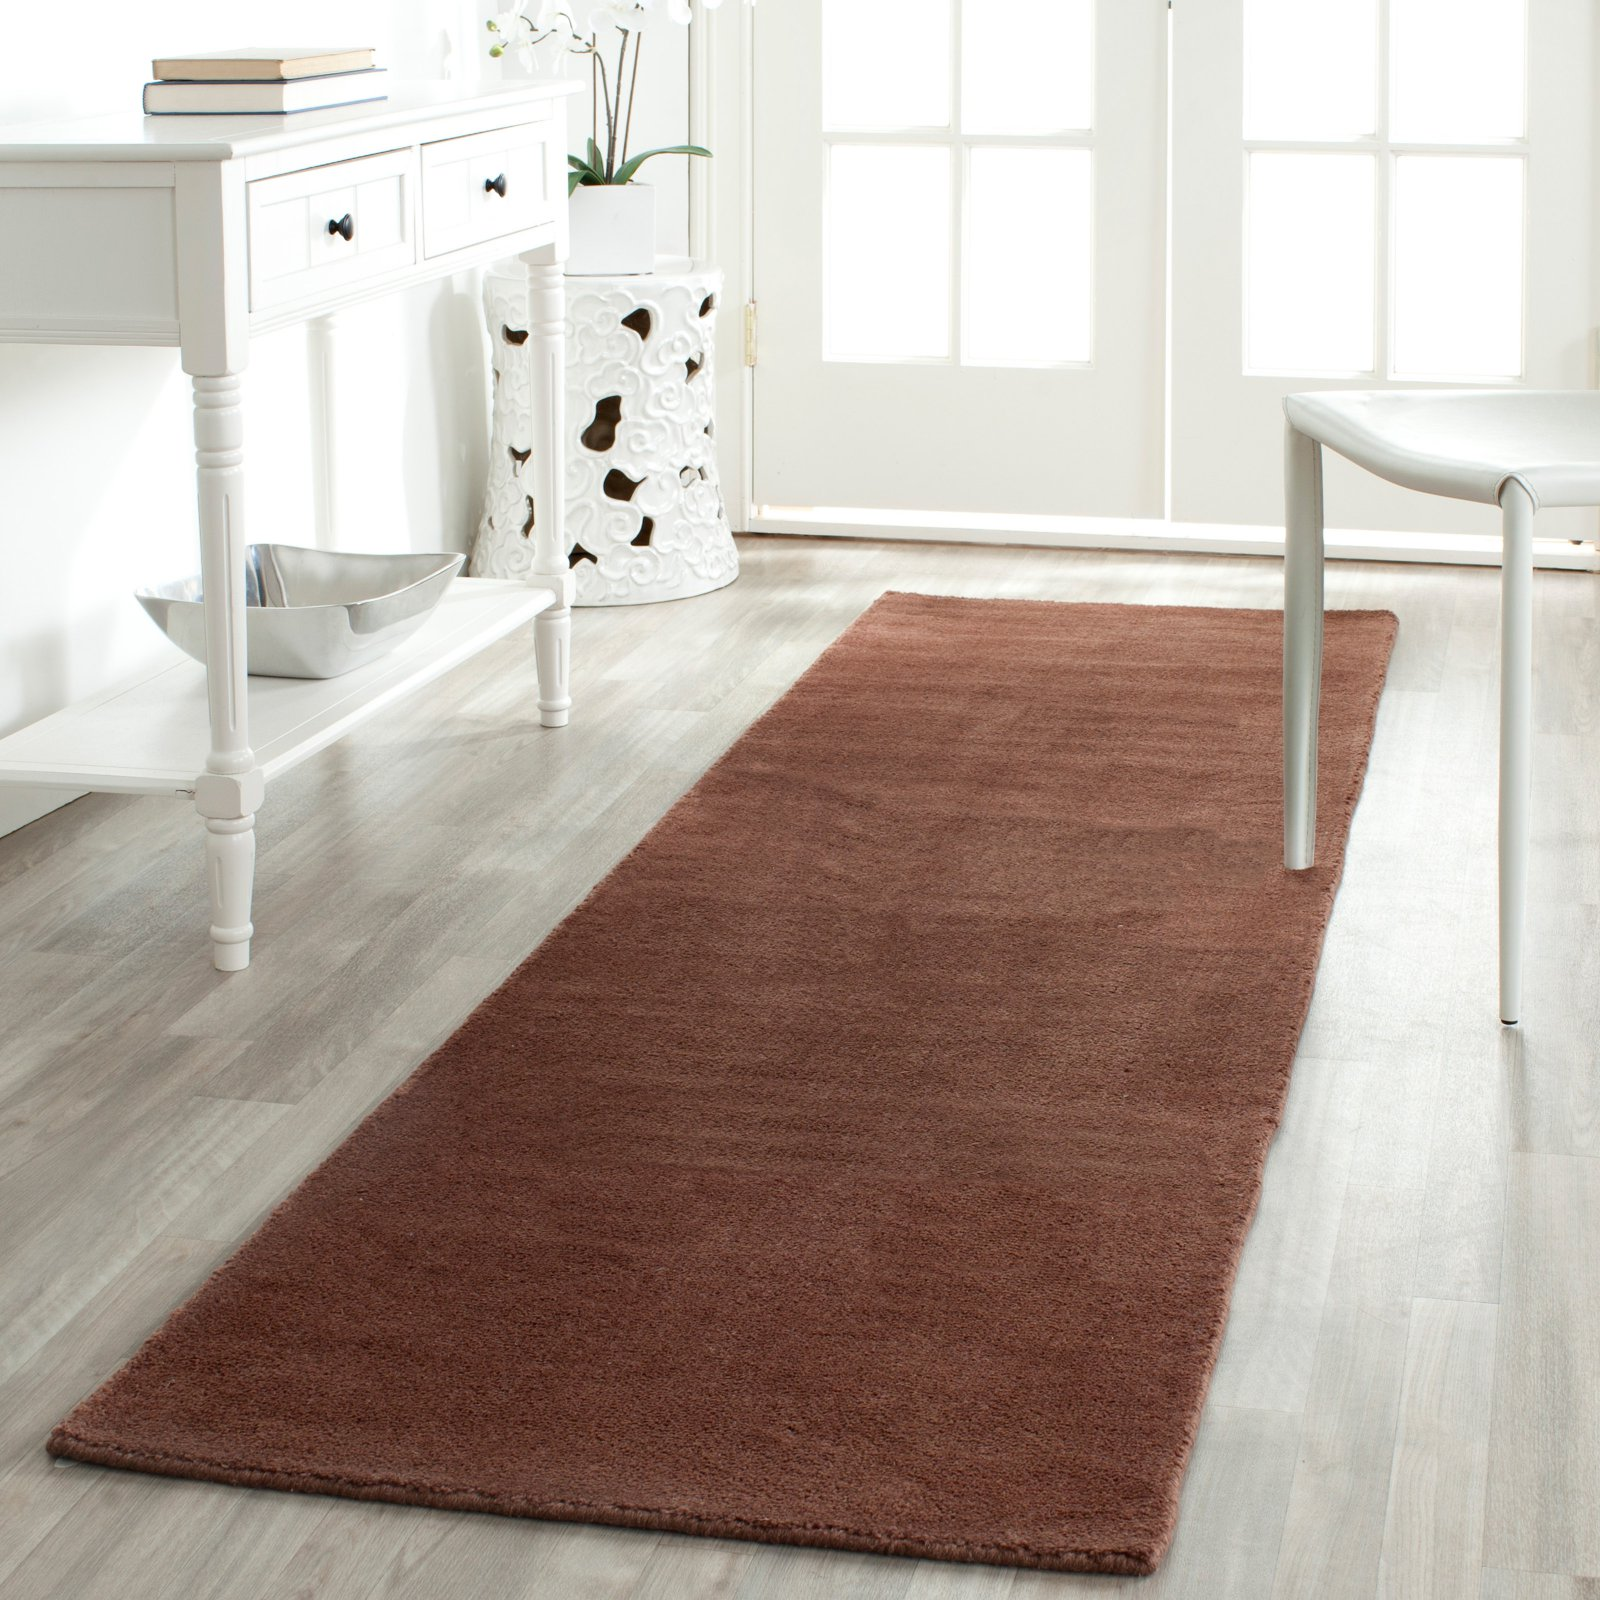 Safavieh Himalaya Rachelle Solid Area Rug or Runner